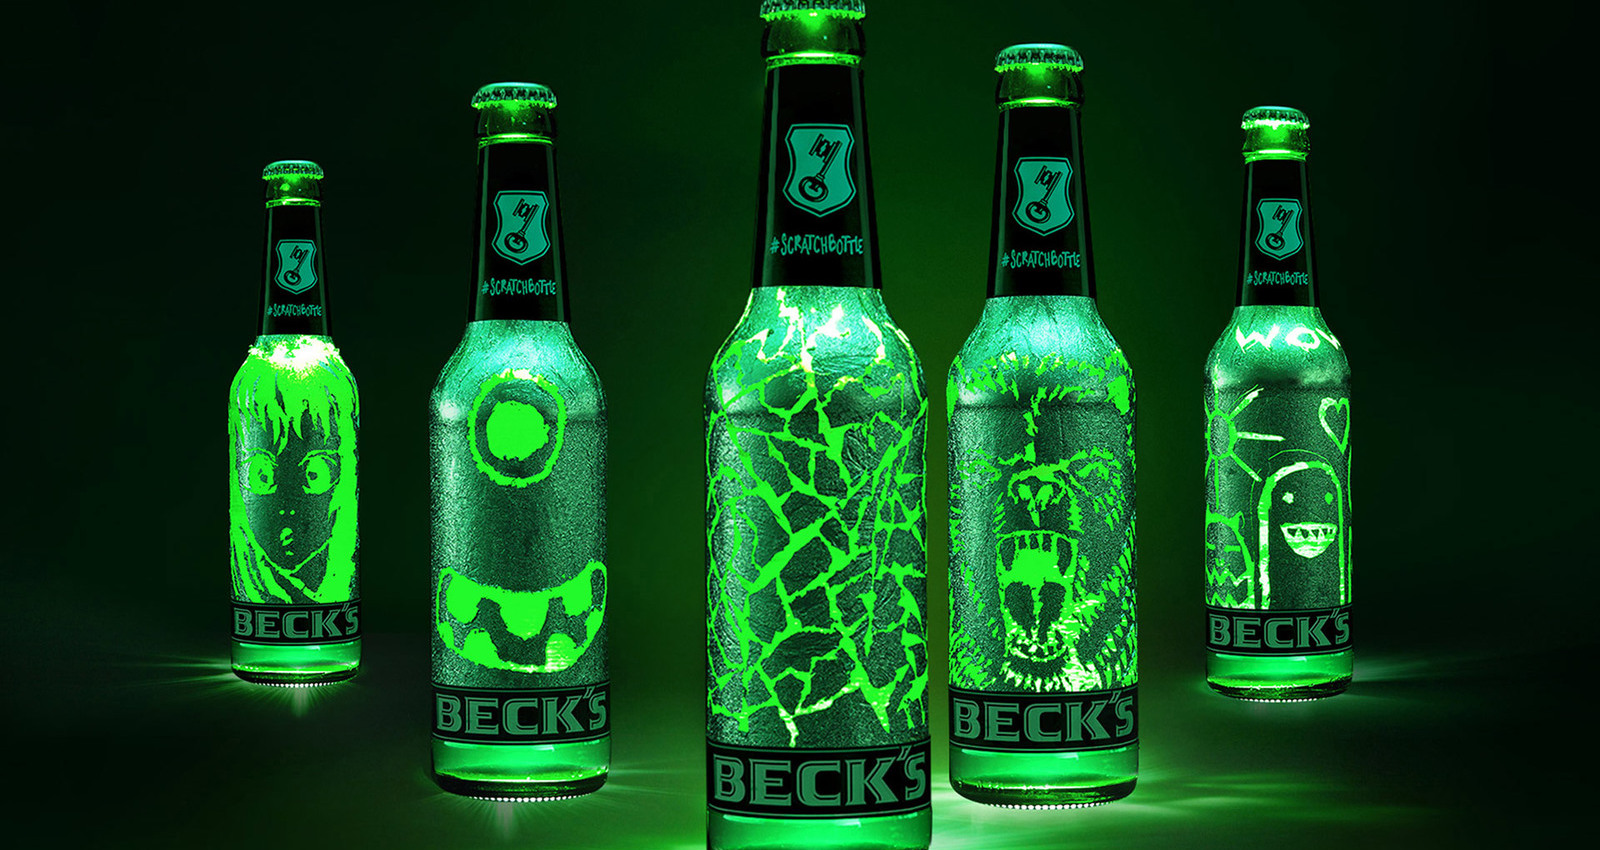 Beck's Scratchbottle